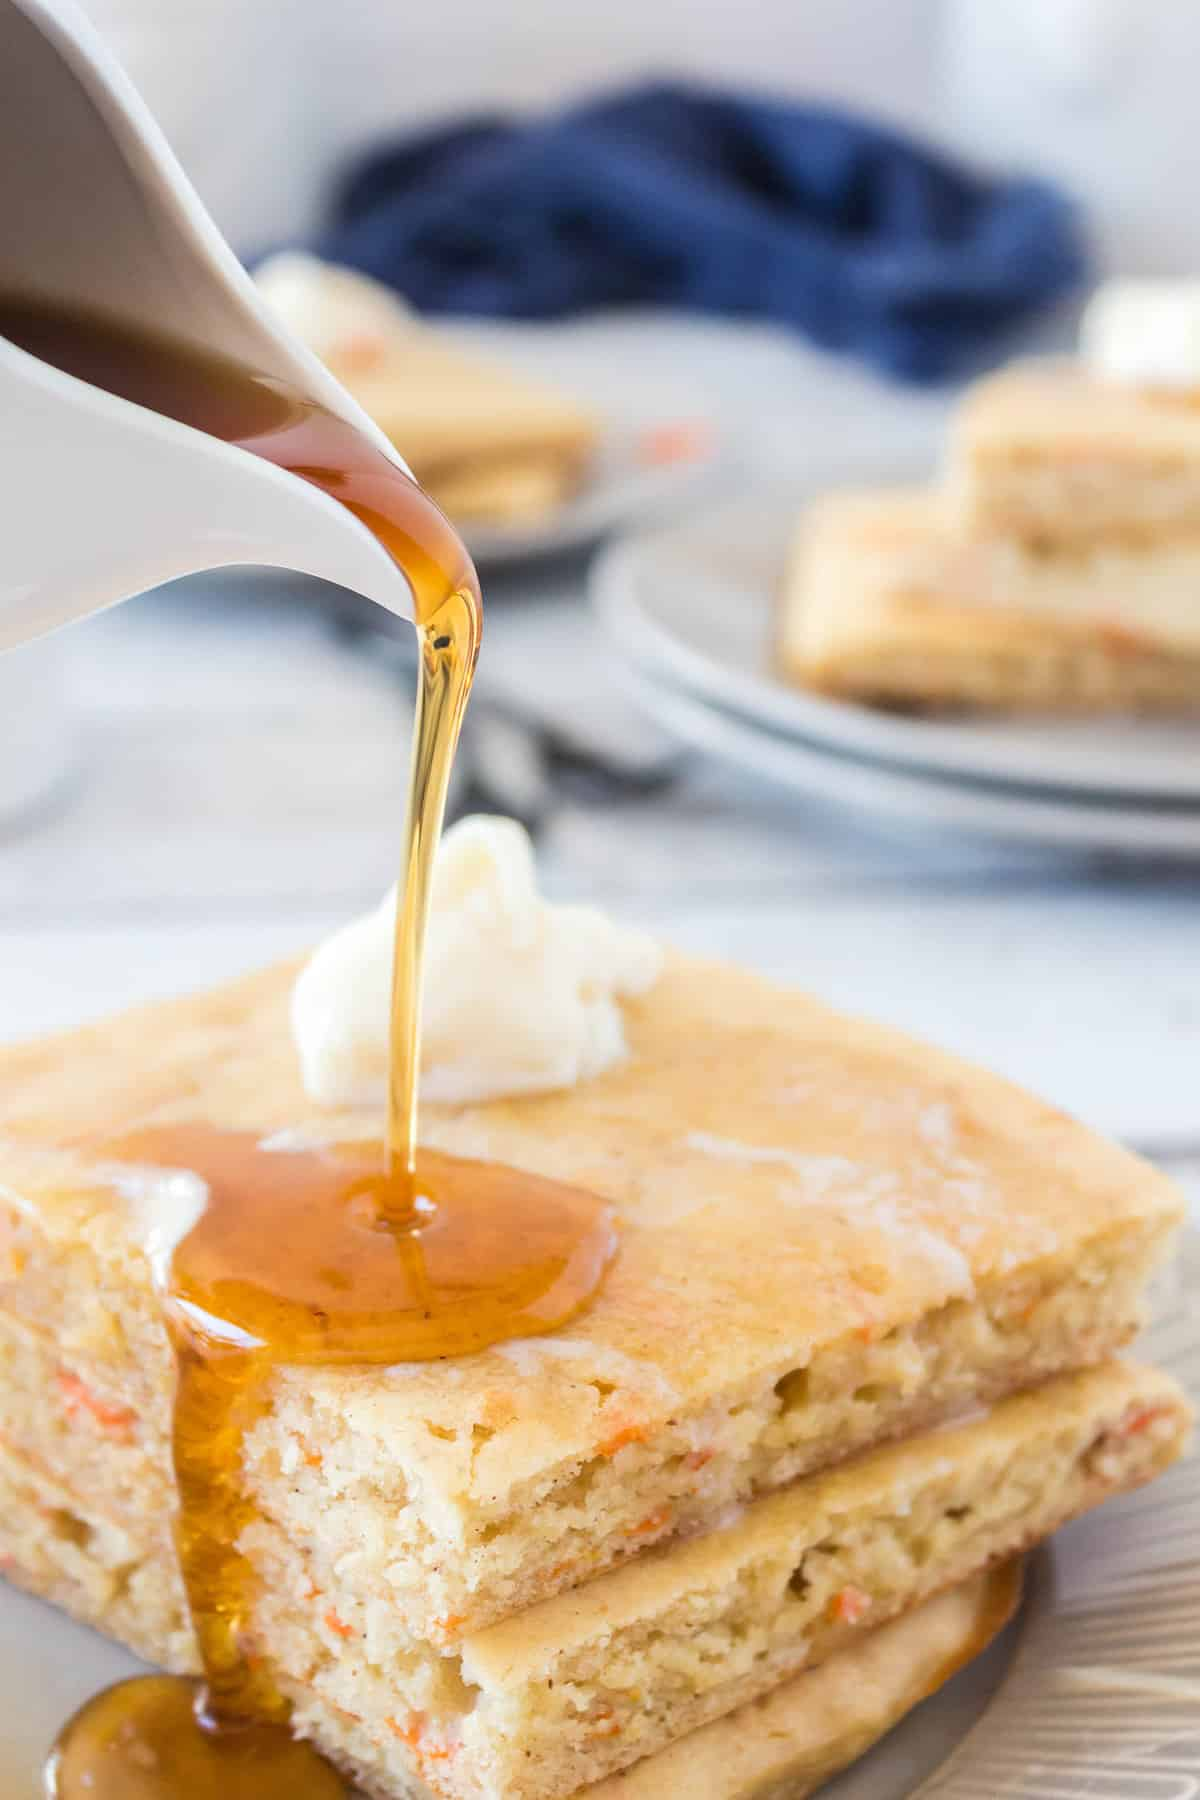 syrup being poured on carrot pancakes